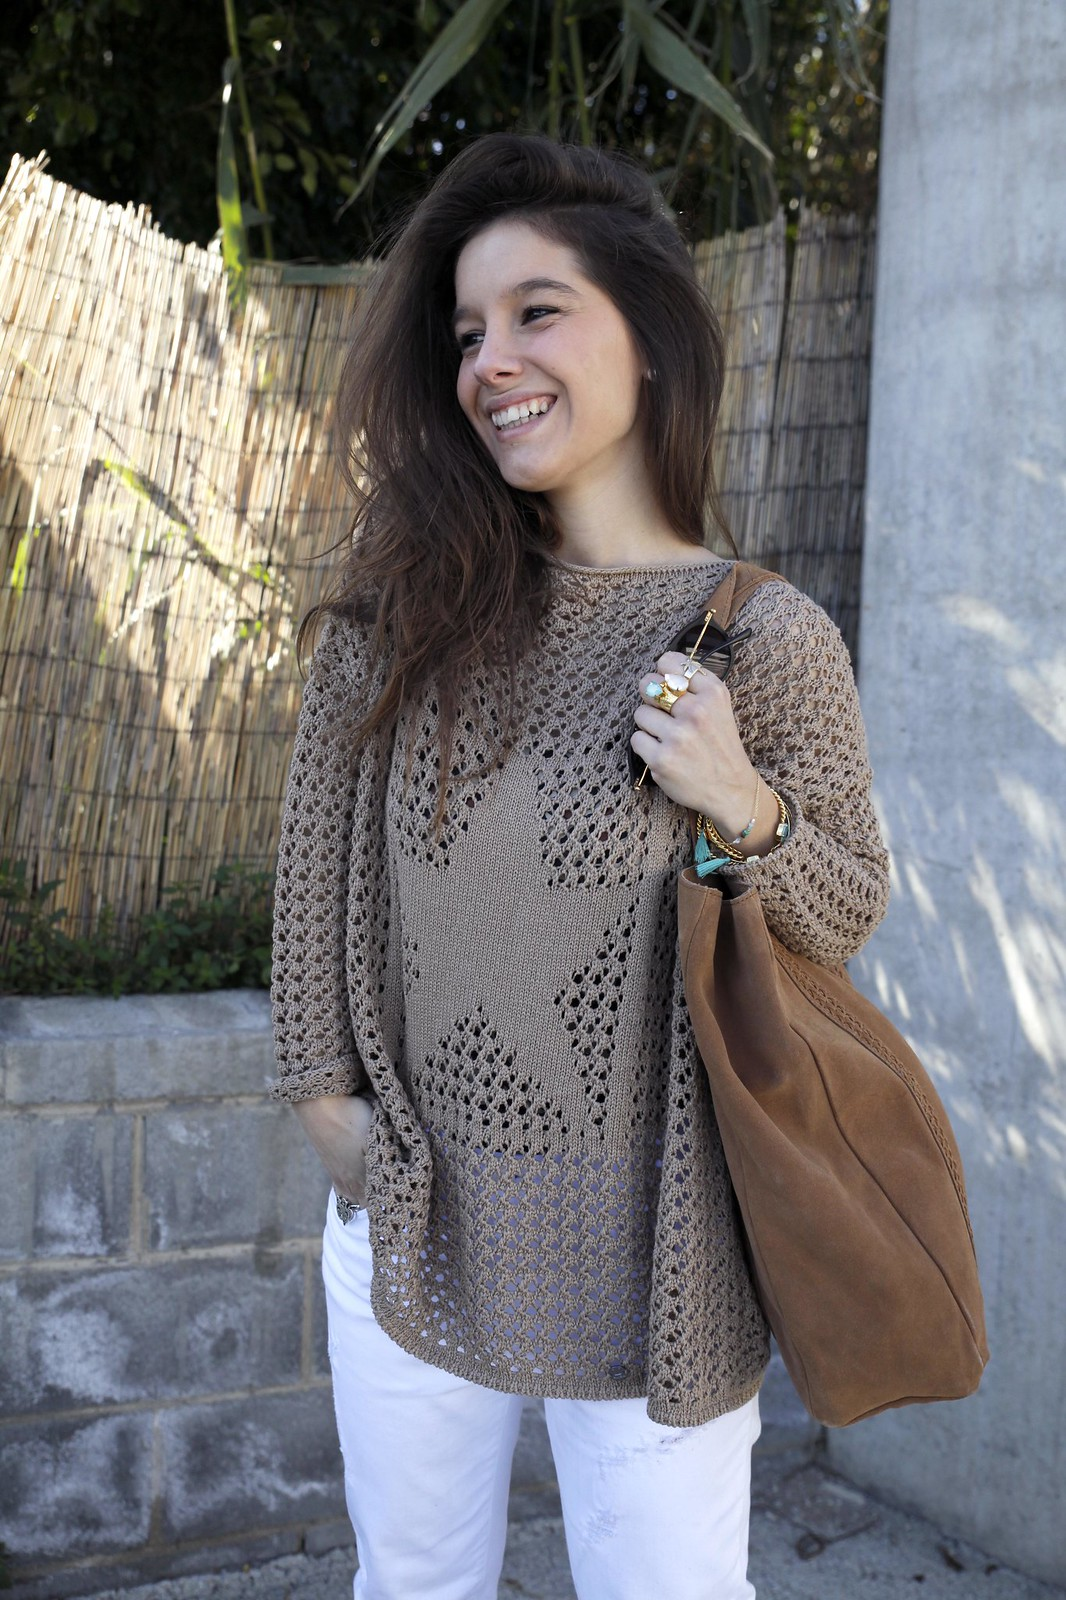 013_SPRING_NEUTRAL_OUTFIT_STREET_STYLE_FASHION_BLOGGER_INFLUENCER_BARCELONA_THEGUESTGIRL